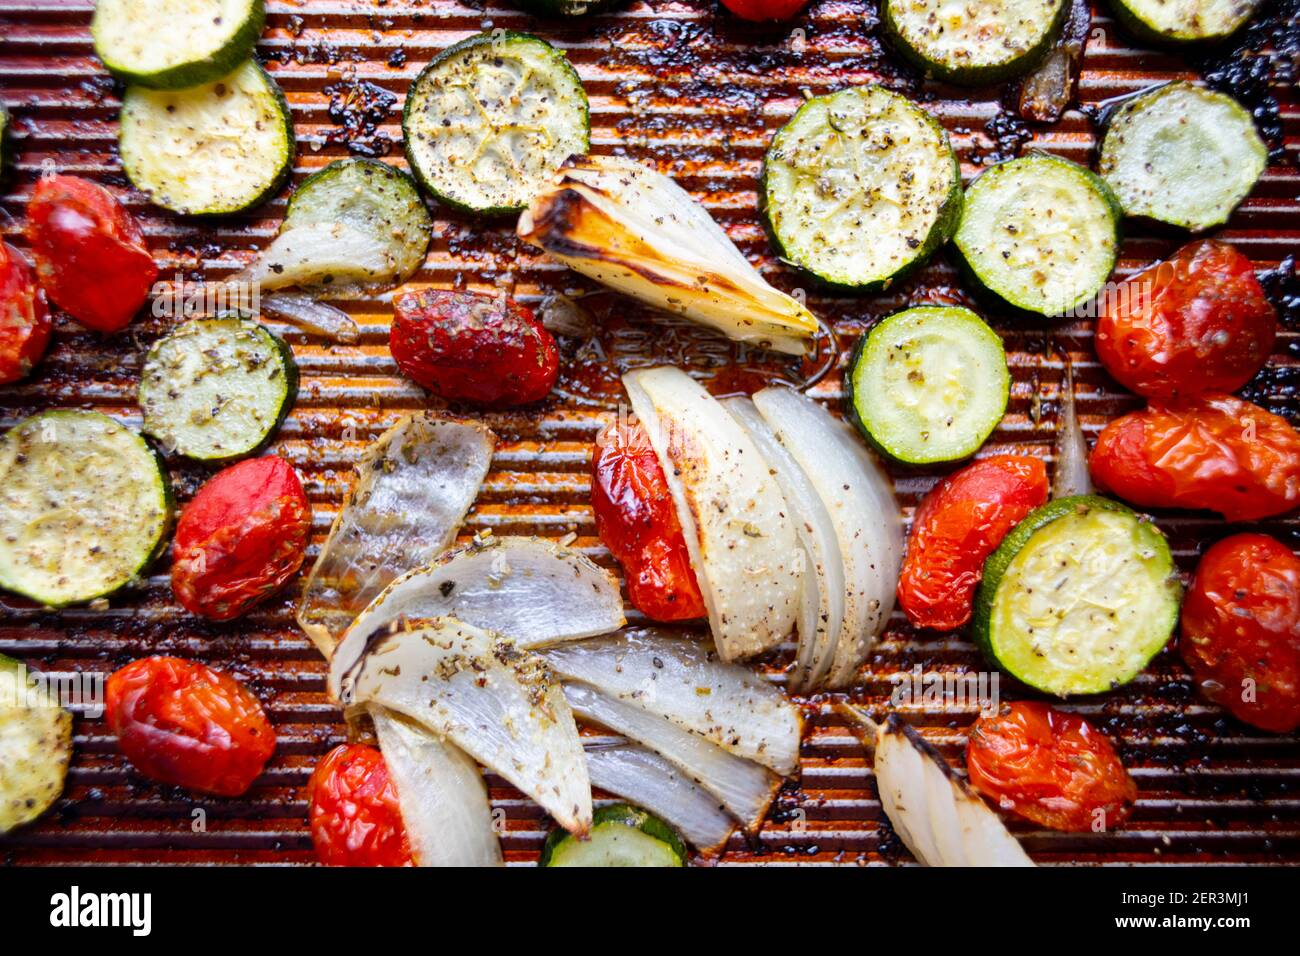 Food Sheet pan roasted vegetables zucchini onions cherry tomatoes Stock Photo